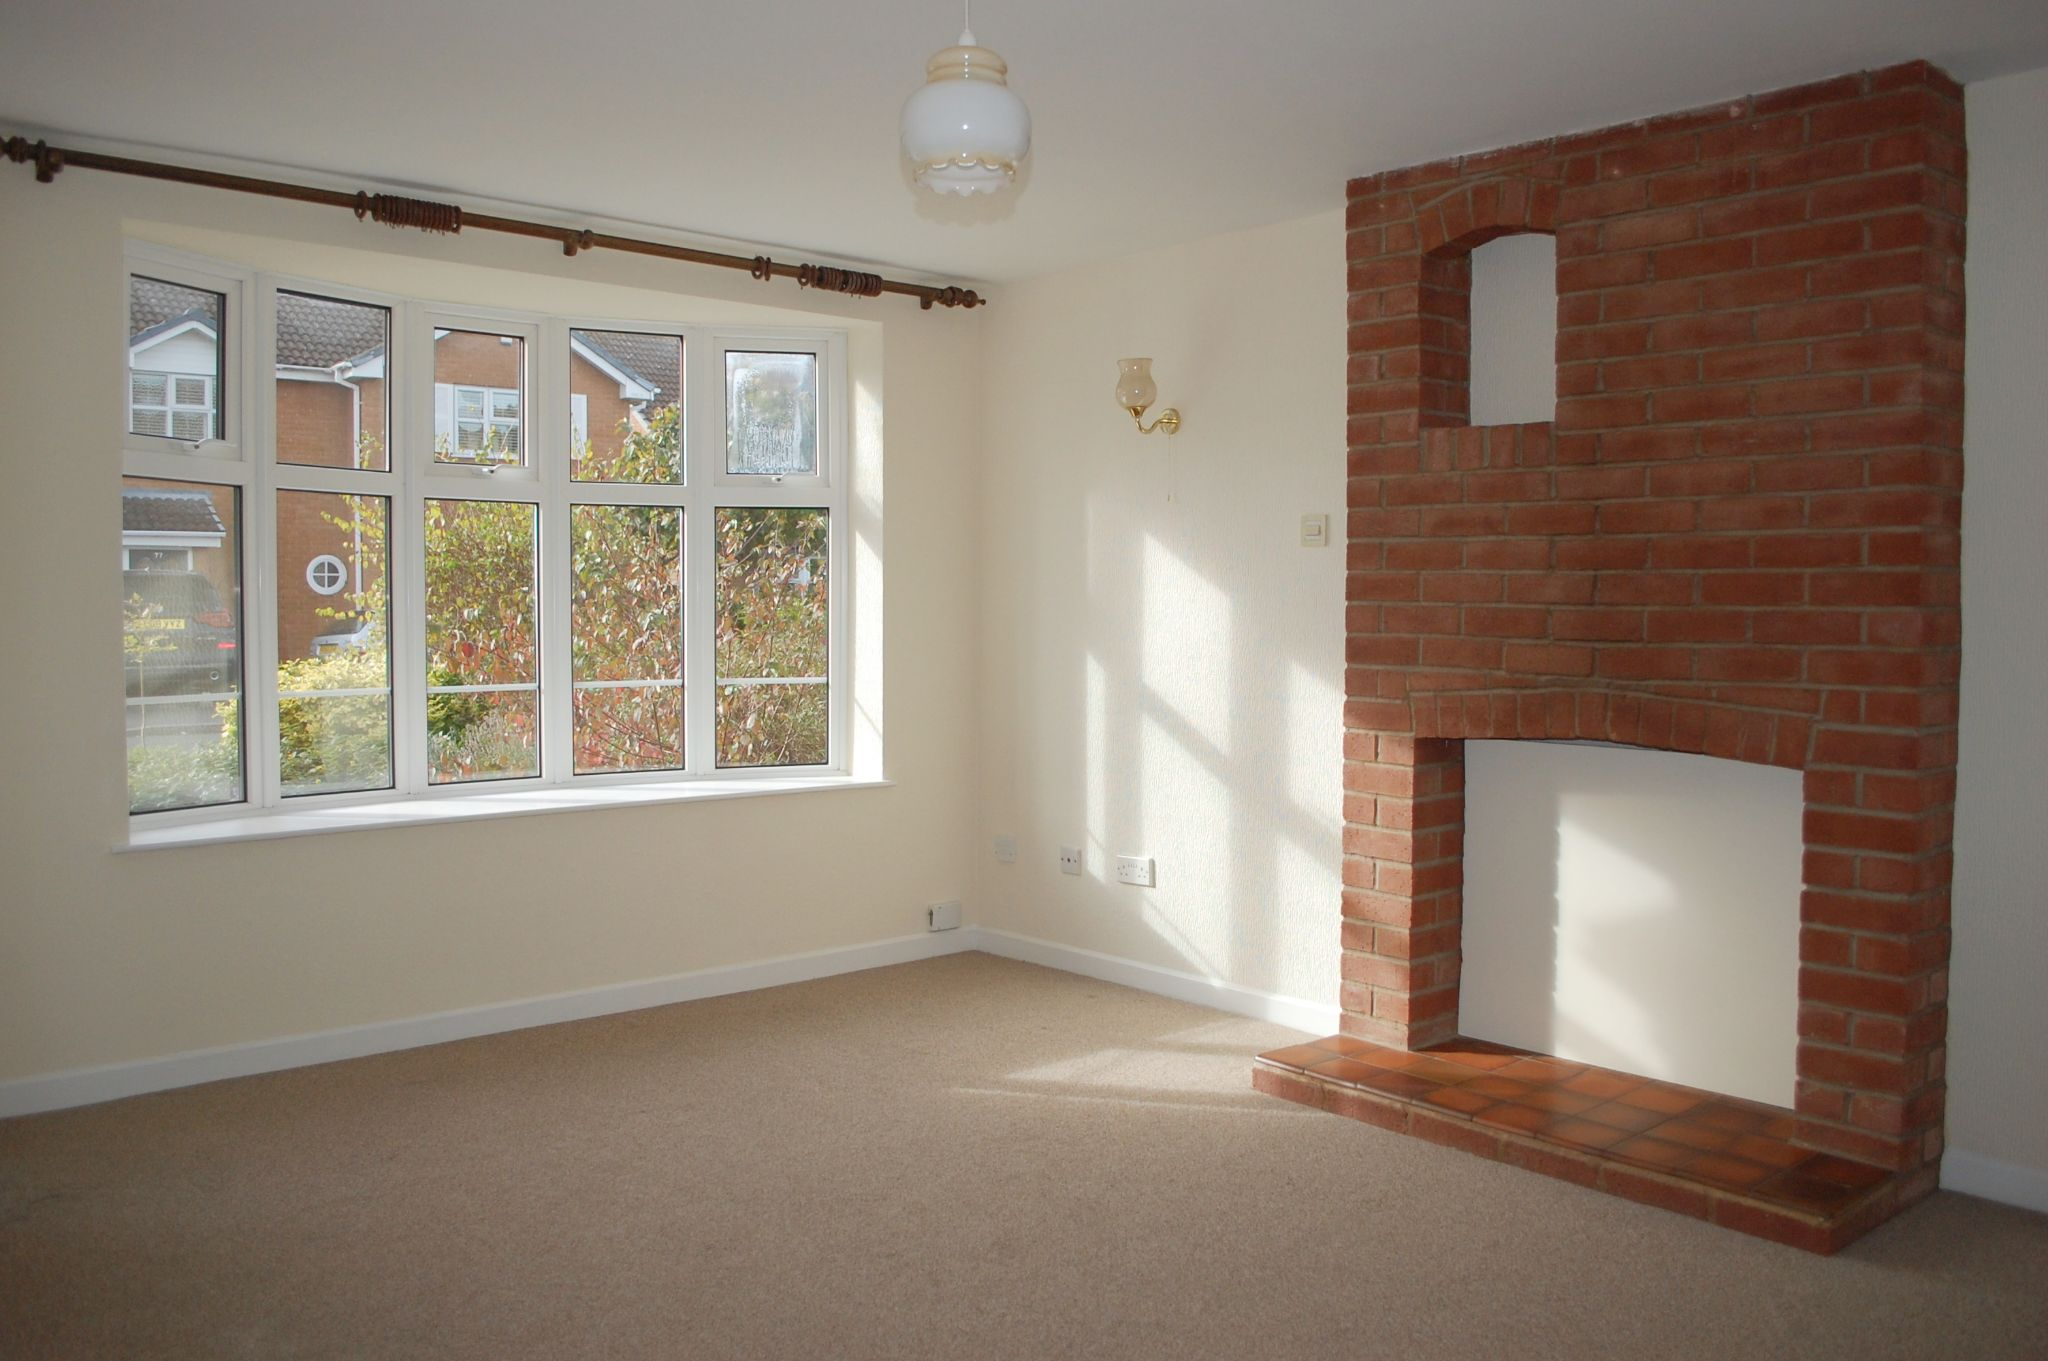 3 bedroom detached house For Sale Stratford-upon-avon - Property photograph